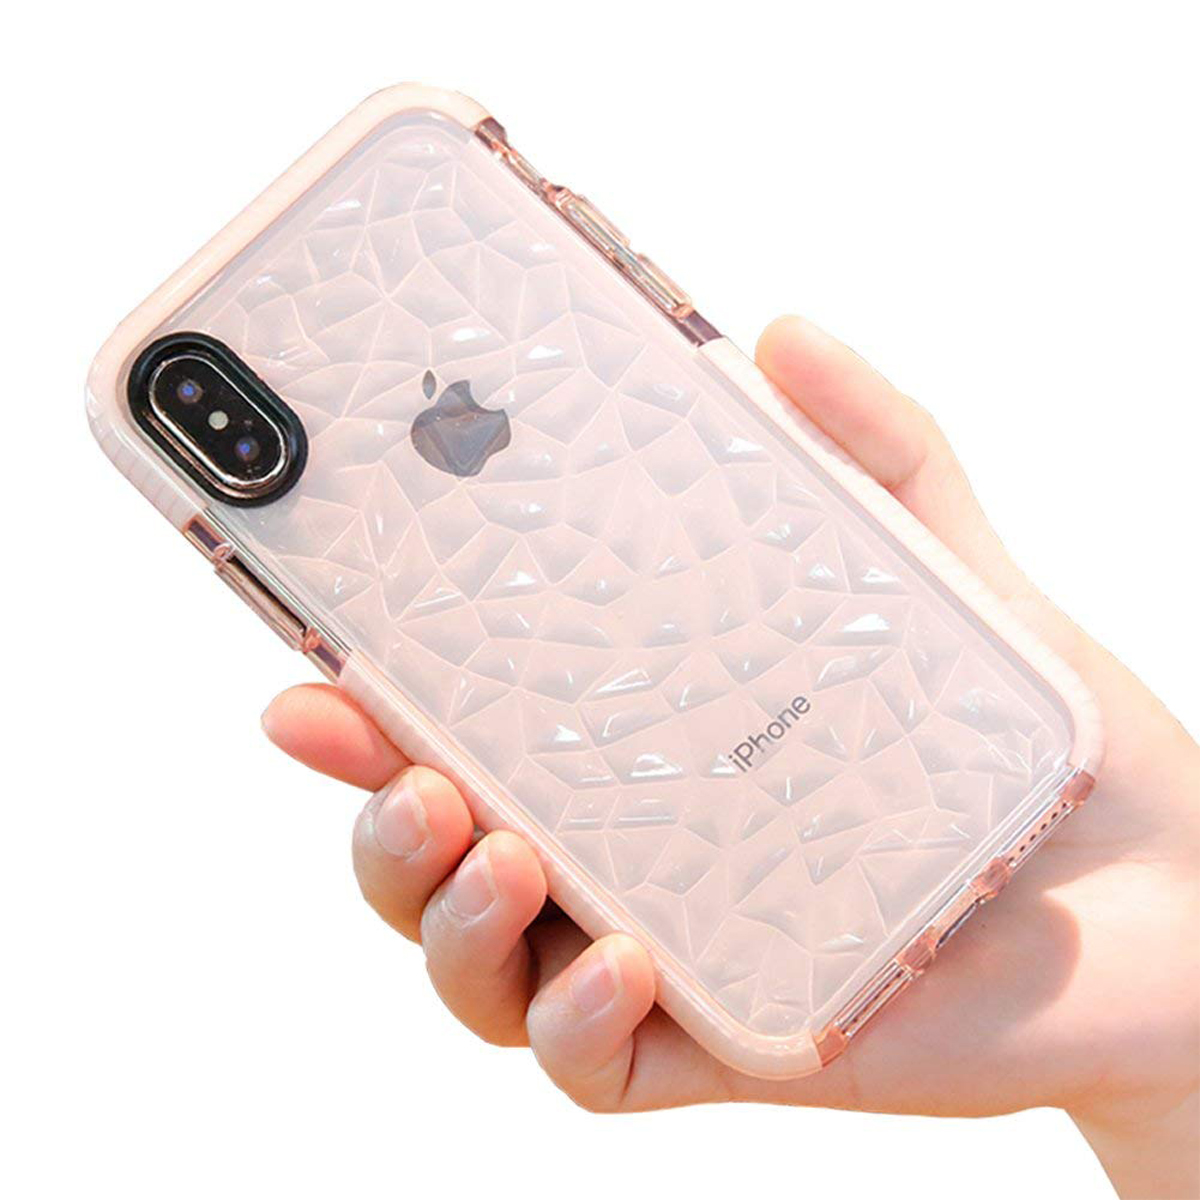 iphone xs max shell case